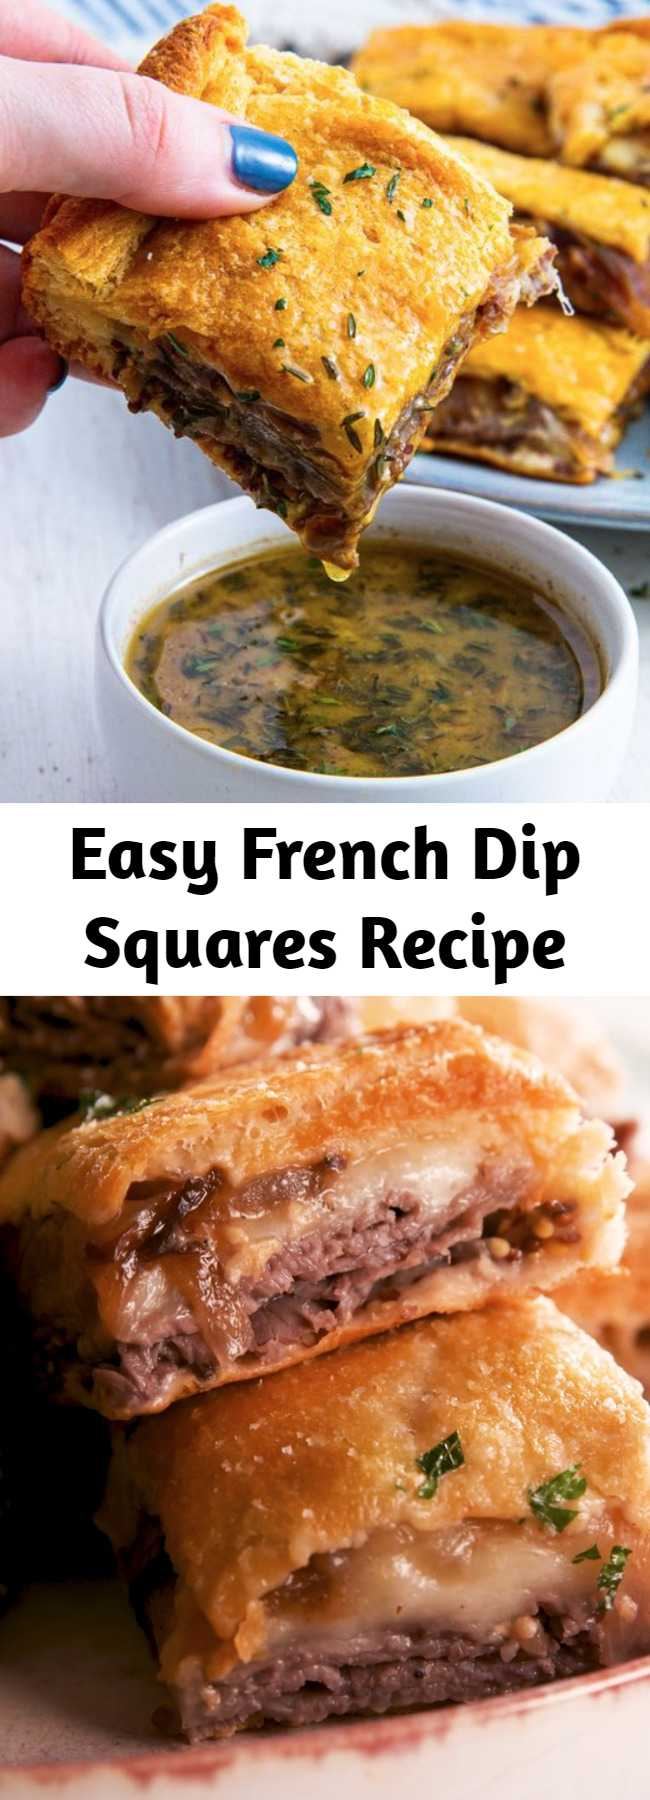 Easy French Dip Squares Recipe - Turns out you don't need fancy ingredients to make the best party appetizer ever. These easy french dip squares are loaded with complex flavors (thanks caramelized onions!) AND there's enough to feed a hungry crowd. #easy #recipe #frenchdip #bites #appetizer #entertaining #sandwich #party #oven #roastbeef #caramelizedonions